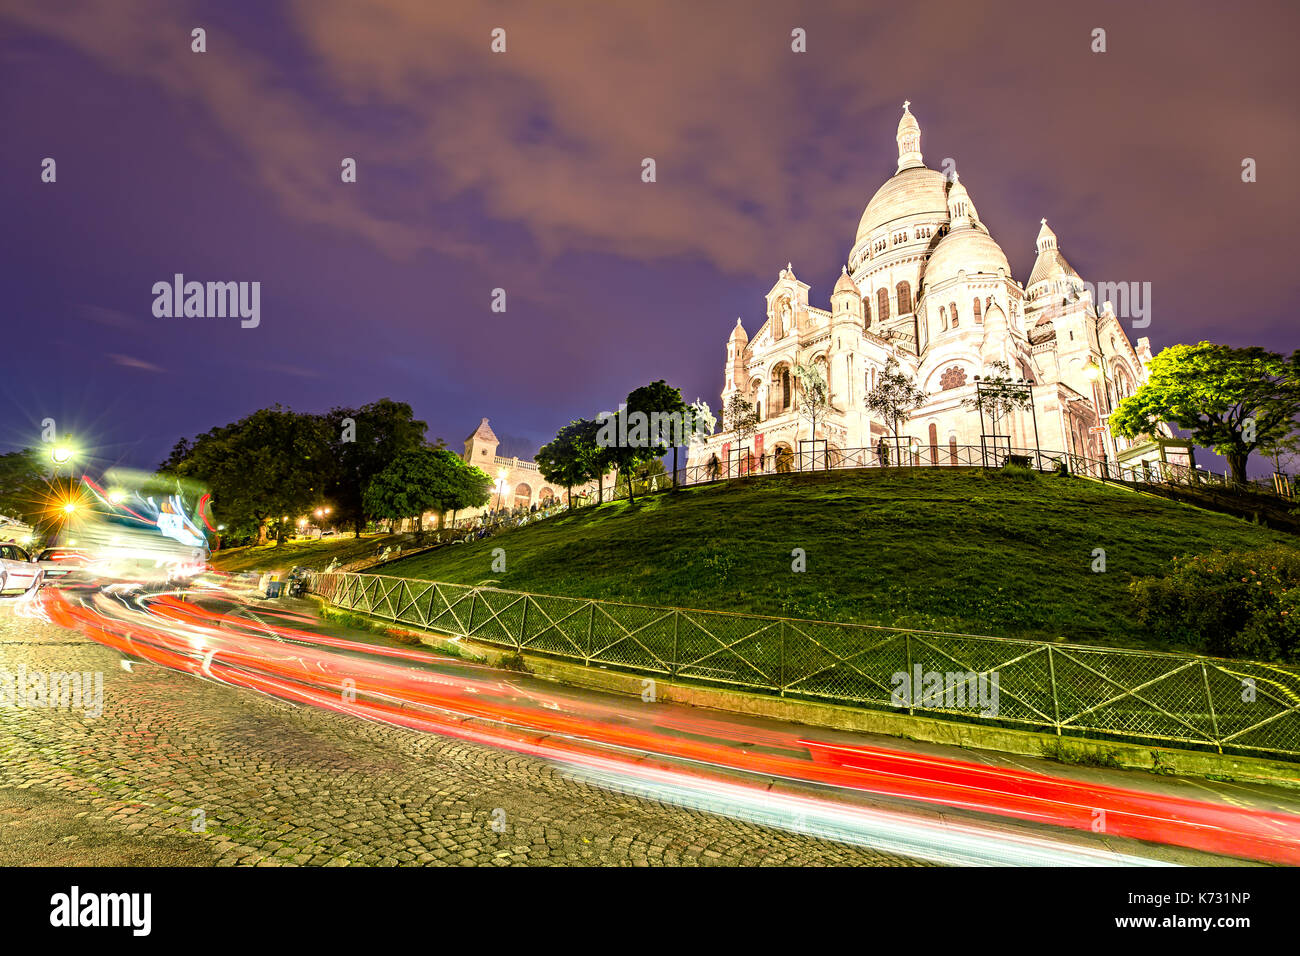 Sacre Coeur in Paris light up at Night - Stock Image